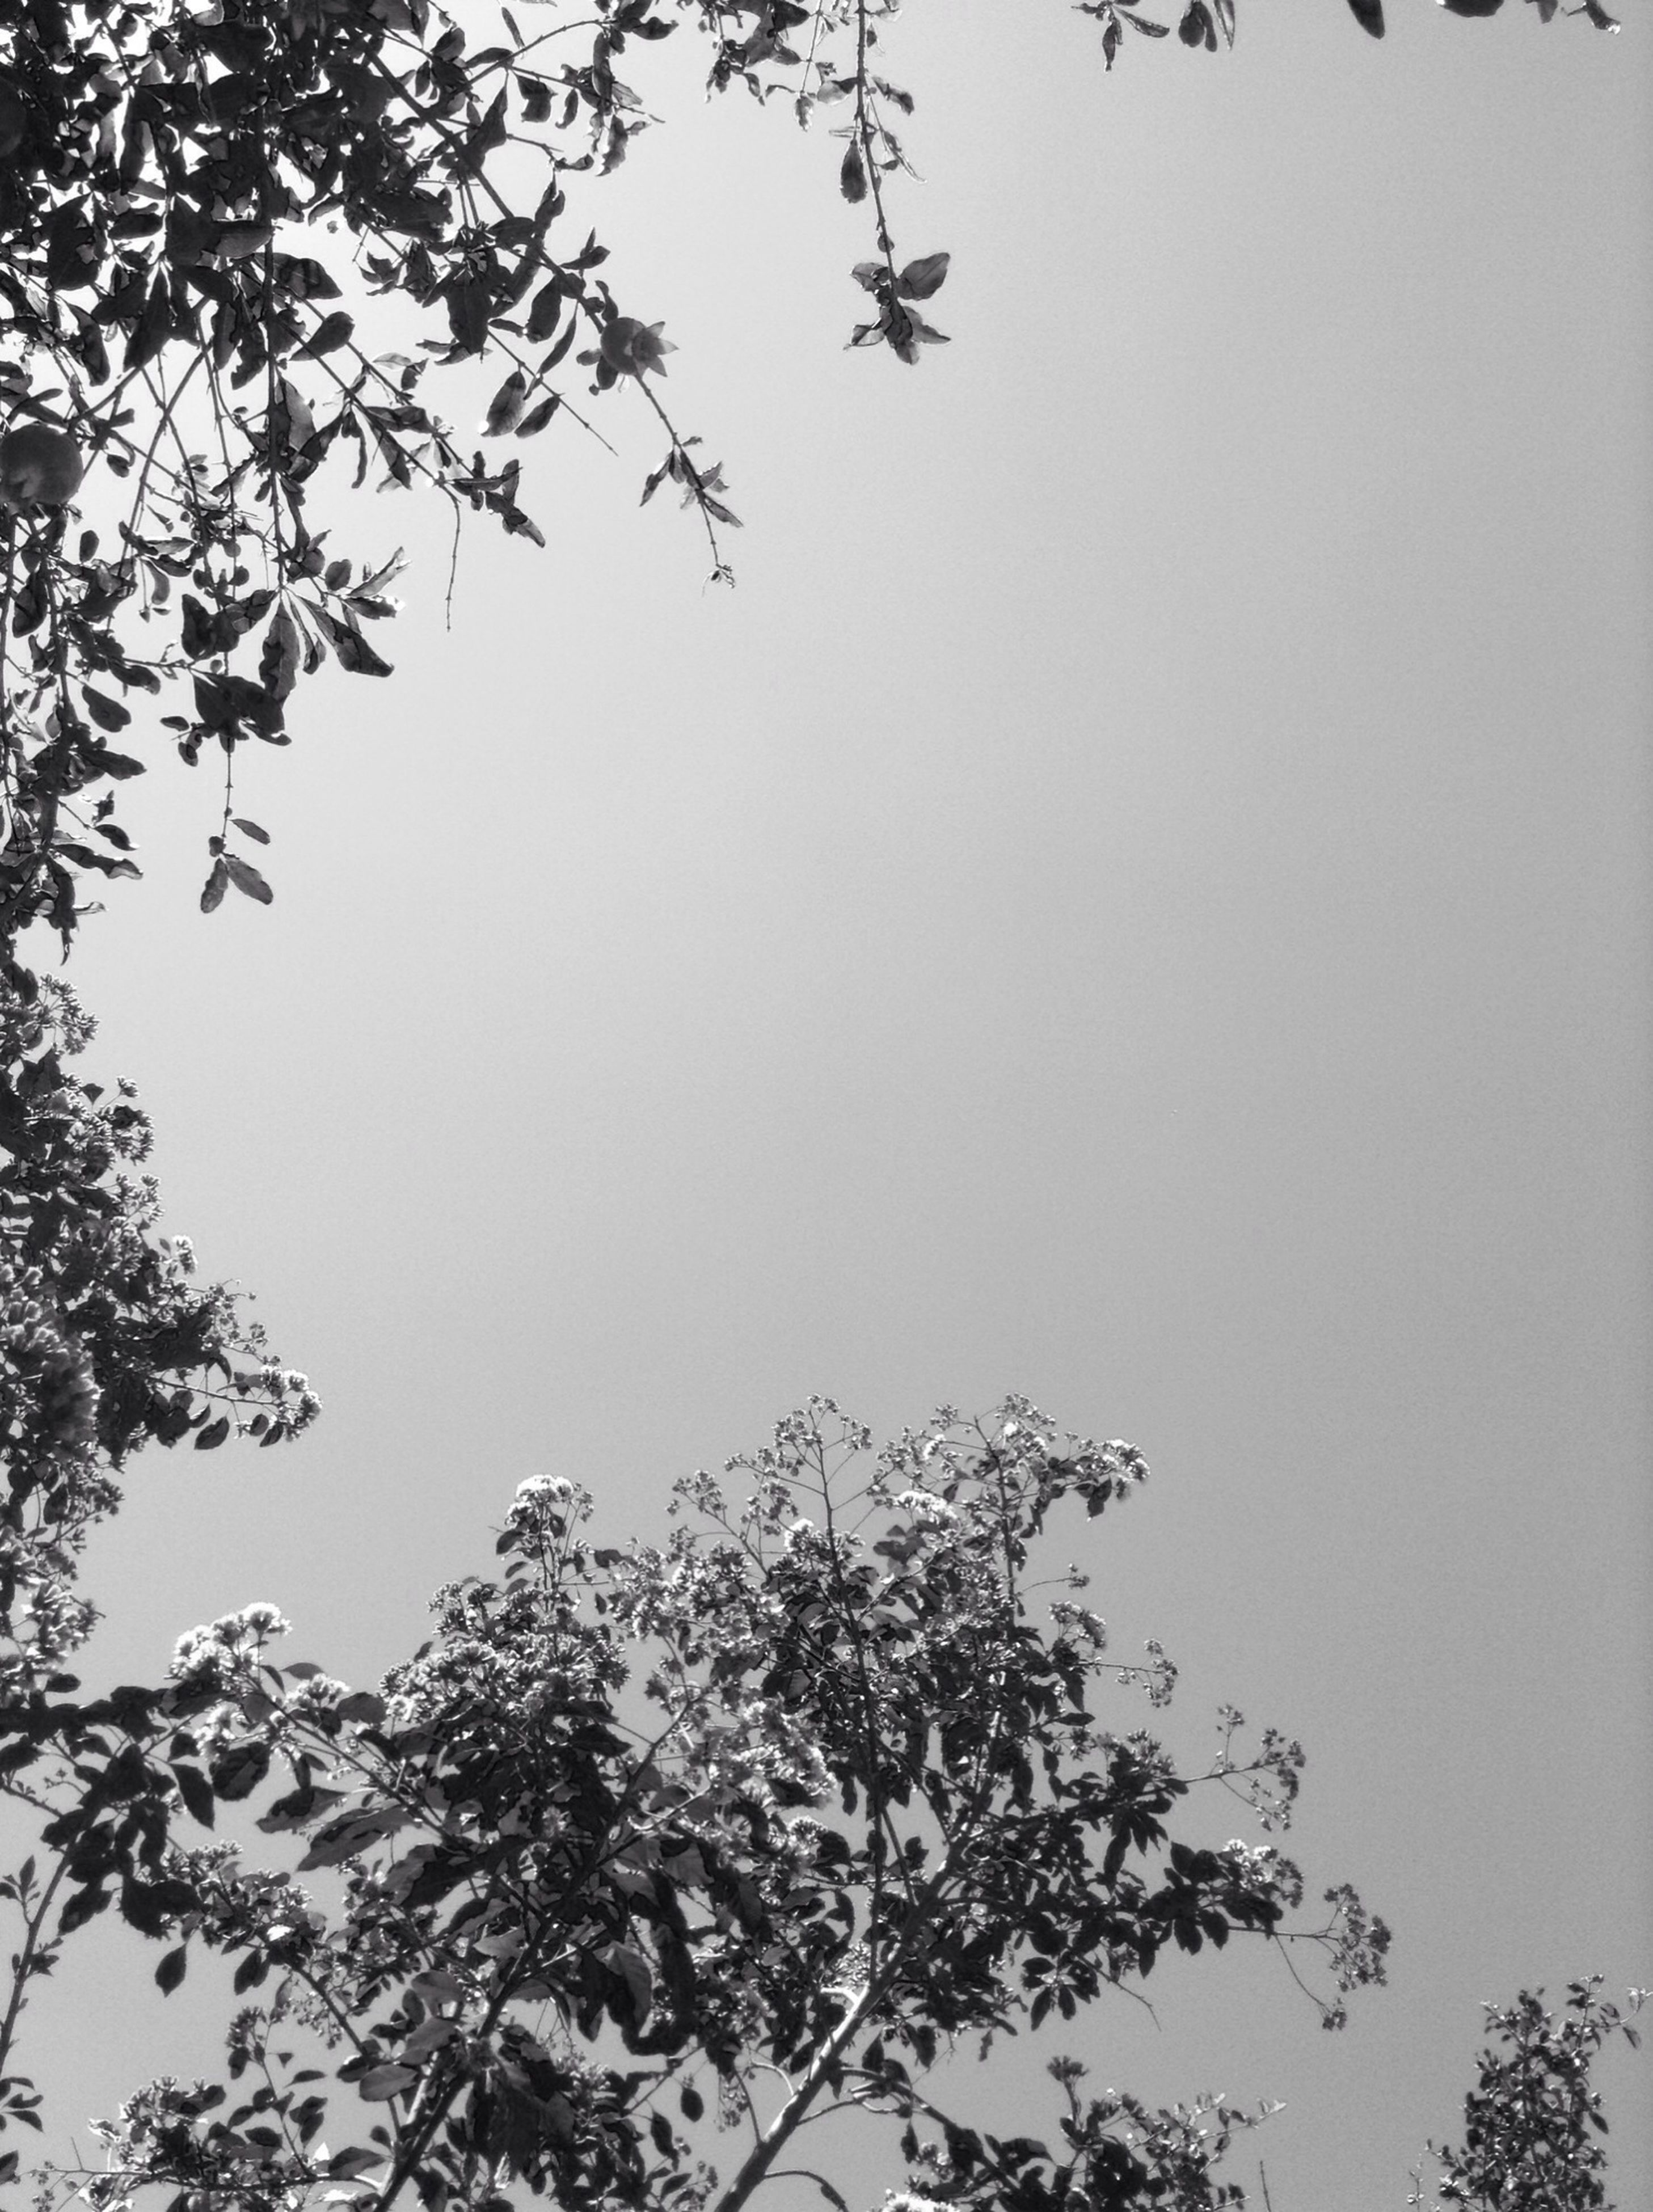 clear sky, tree, branch, low angle view, copy space, nature, growth, beauty in nature, tranquility, bare tree, scenics, day, outdoors, high section, tranquil scene, no people, sky, twig, silhouette, leaf